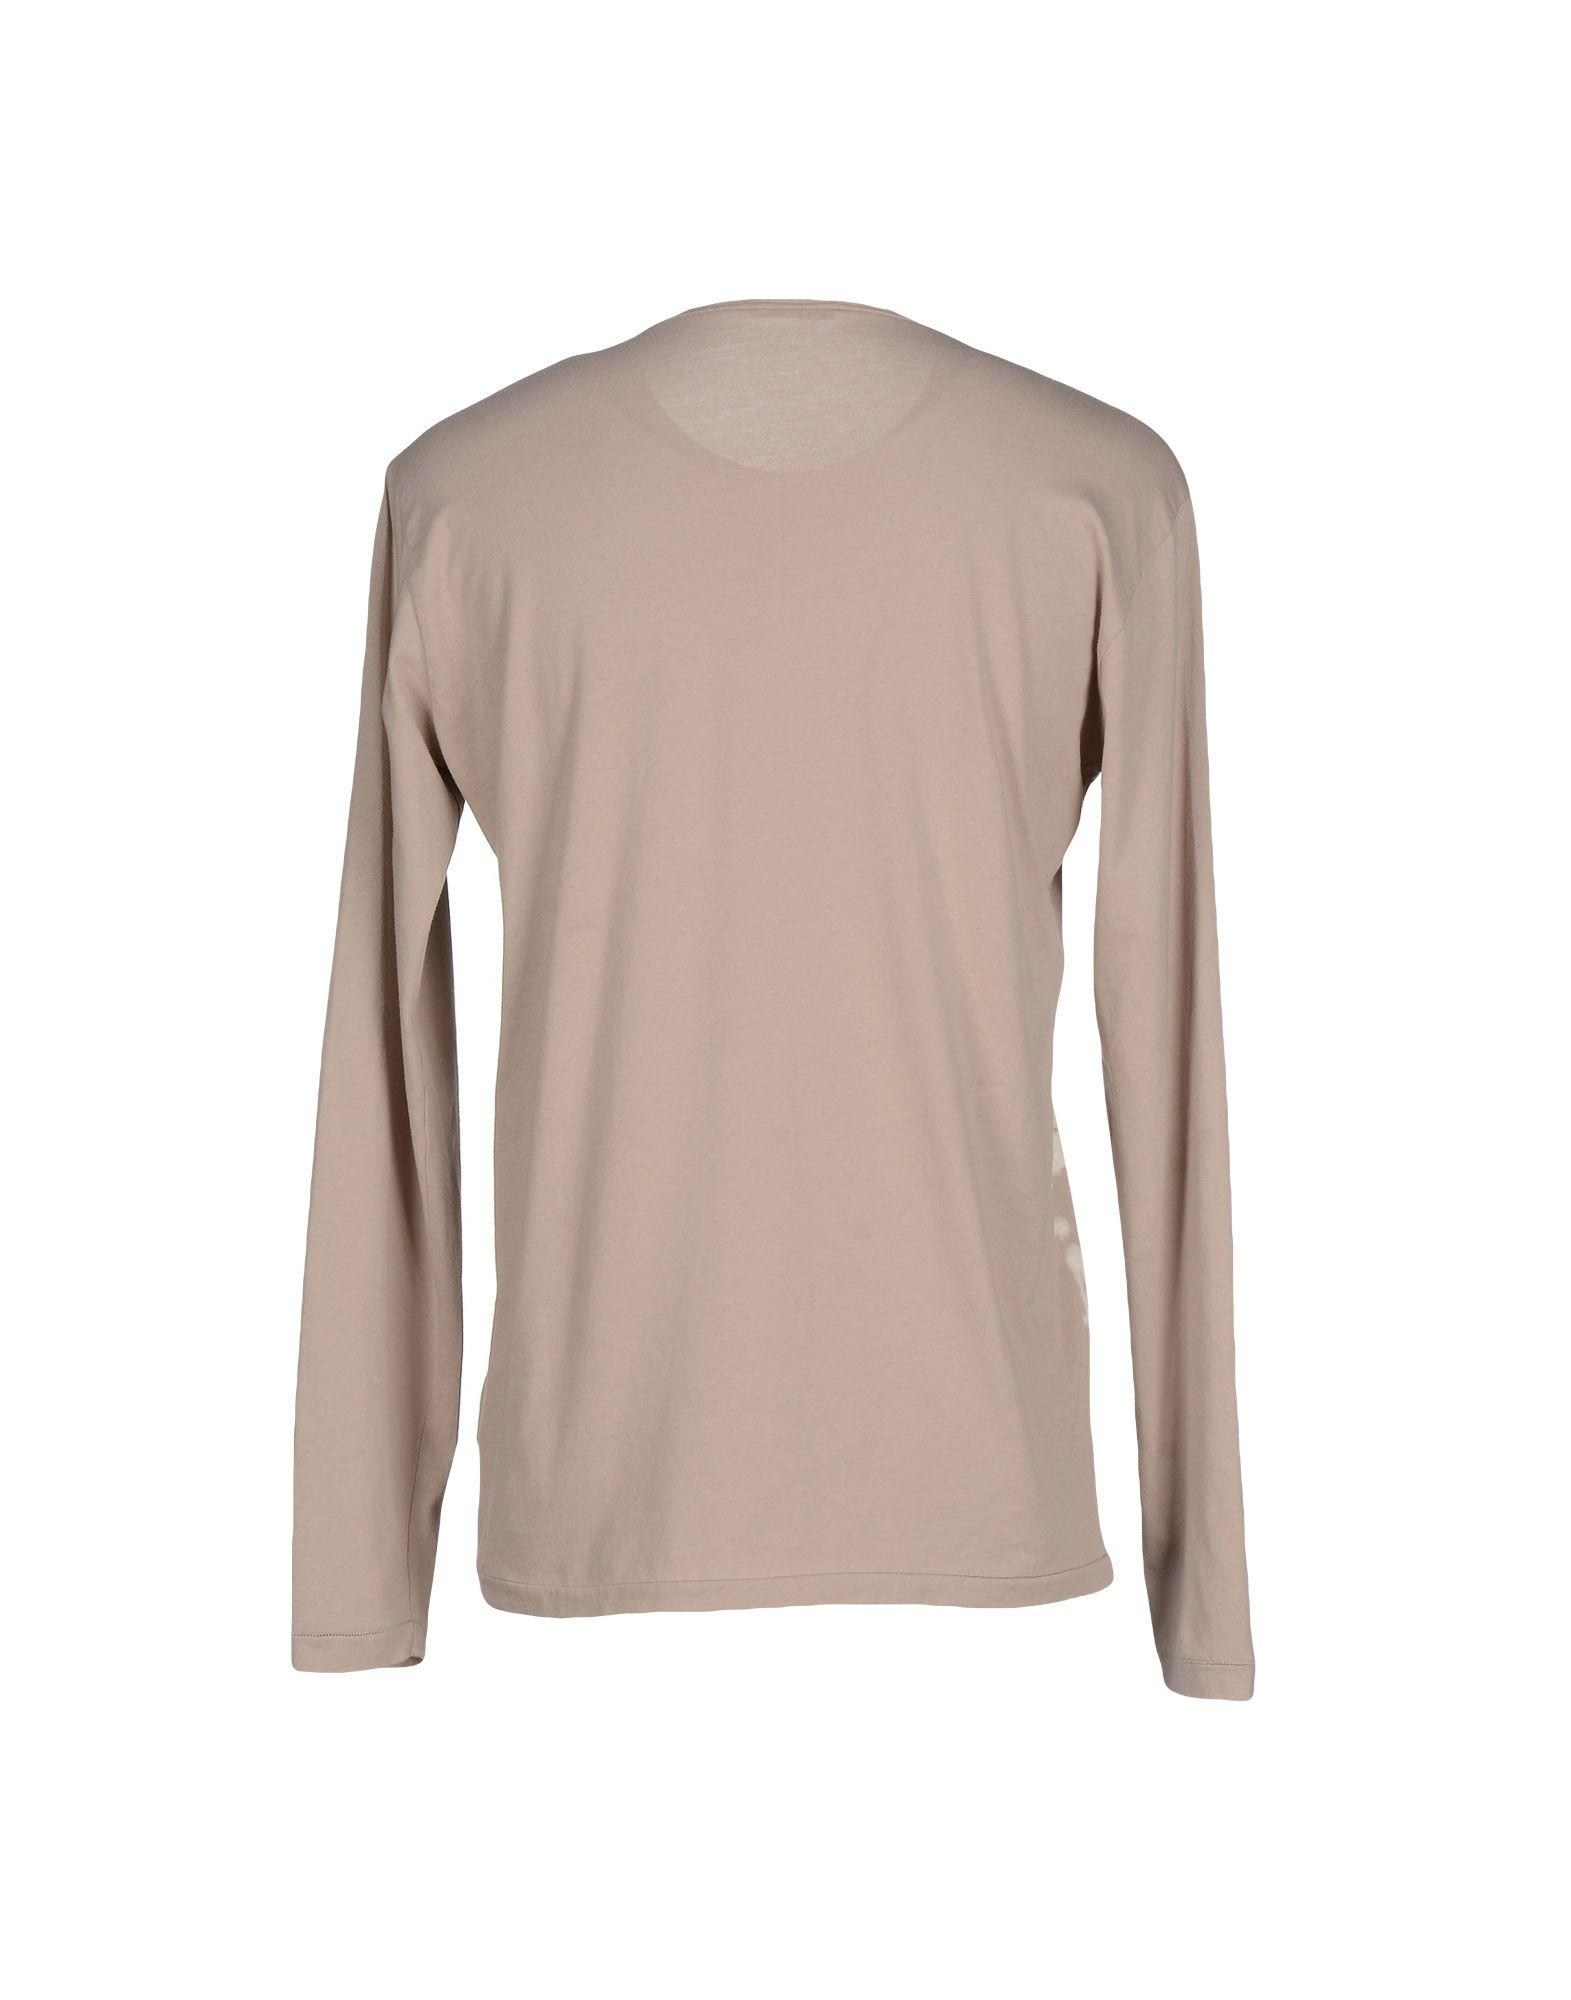 Lyst bottega veneta t shirt in natural for Bottega veneta t shirt